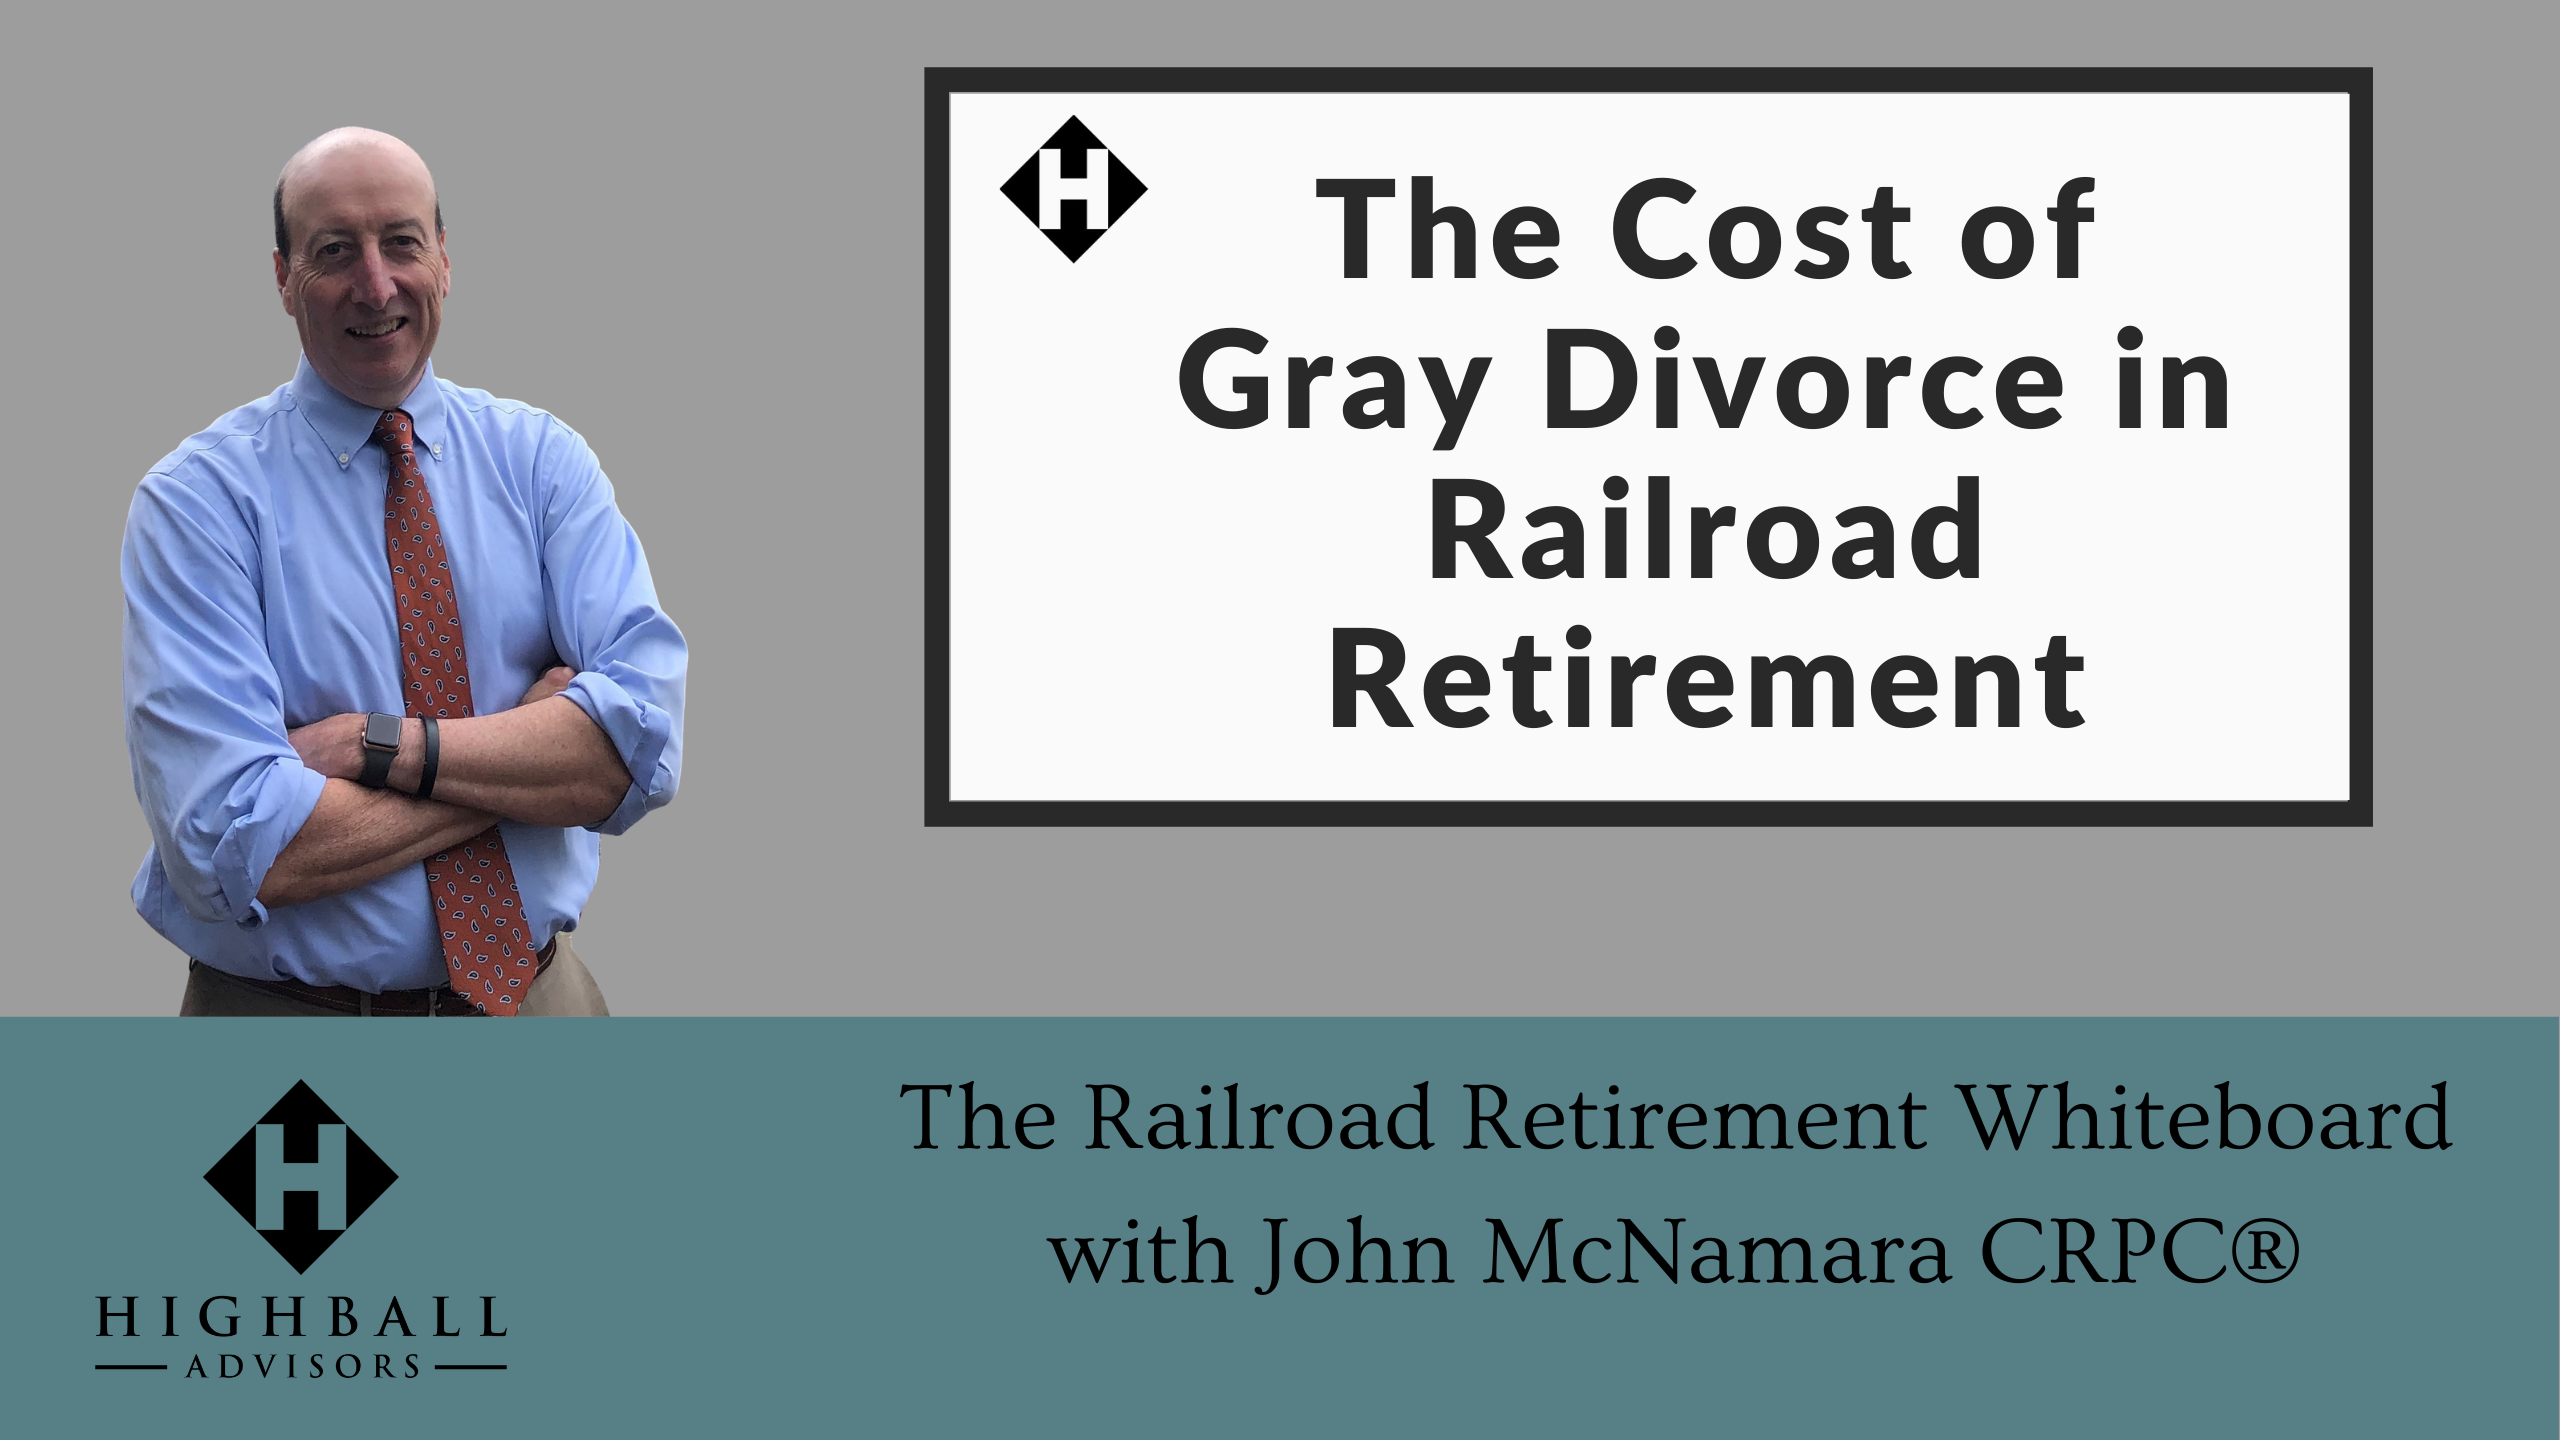 The Cost of Gray Divorce in Railroad Retirement Thumbnail